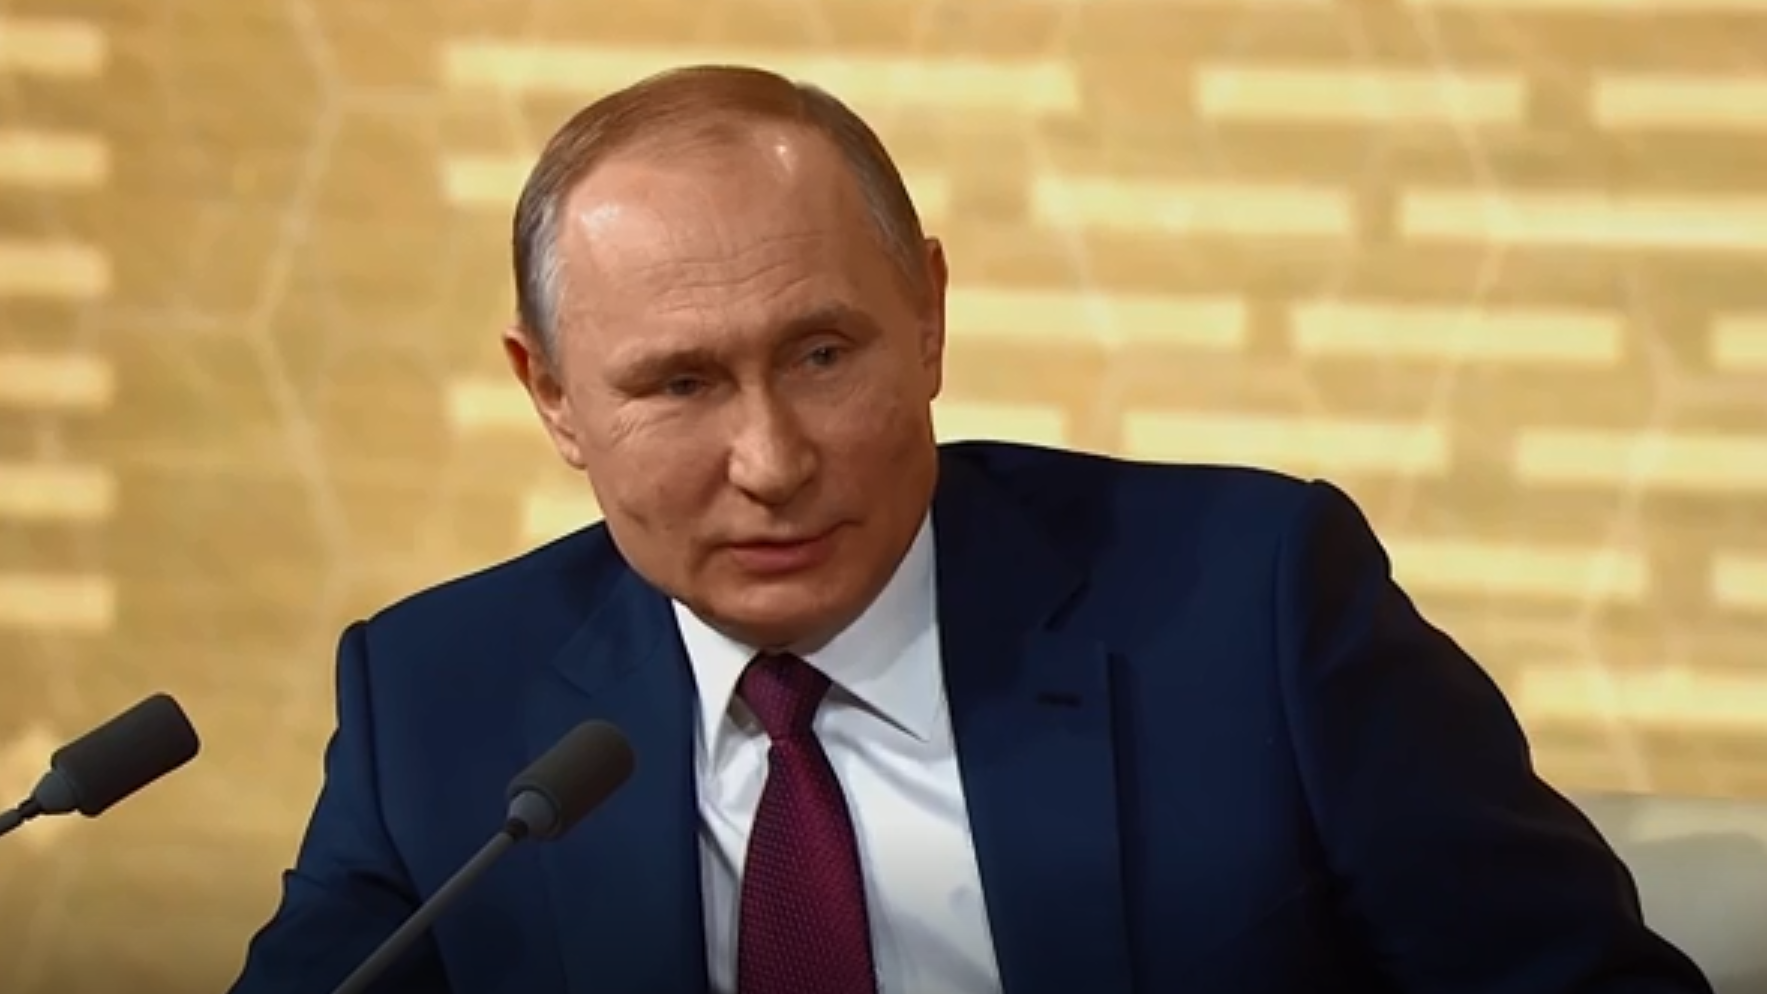 Putin says UNSC permanent members should assume responsibility for global security